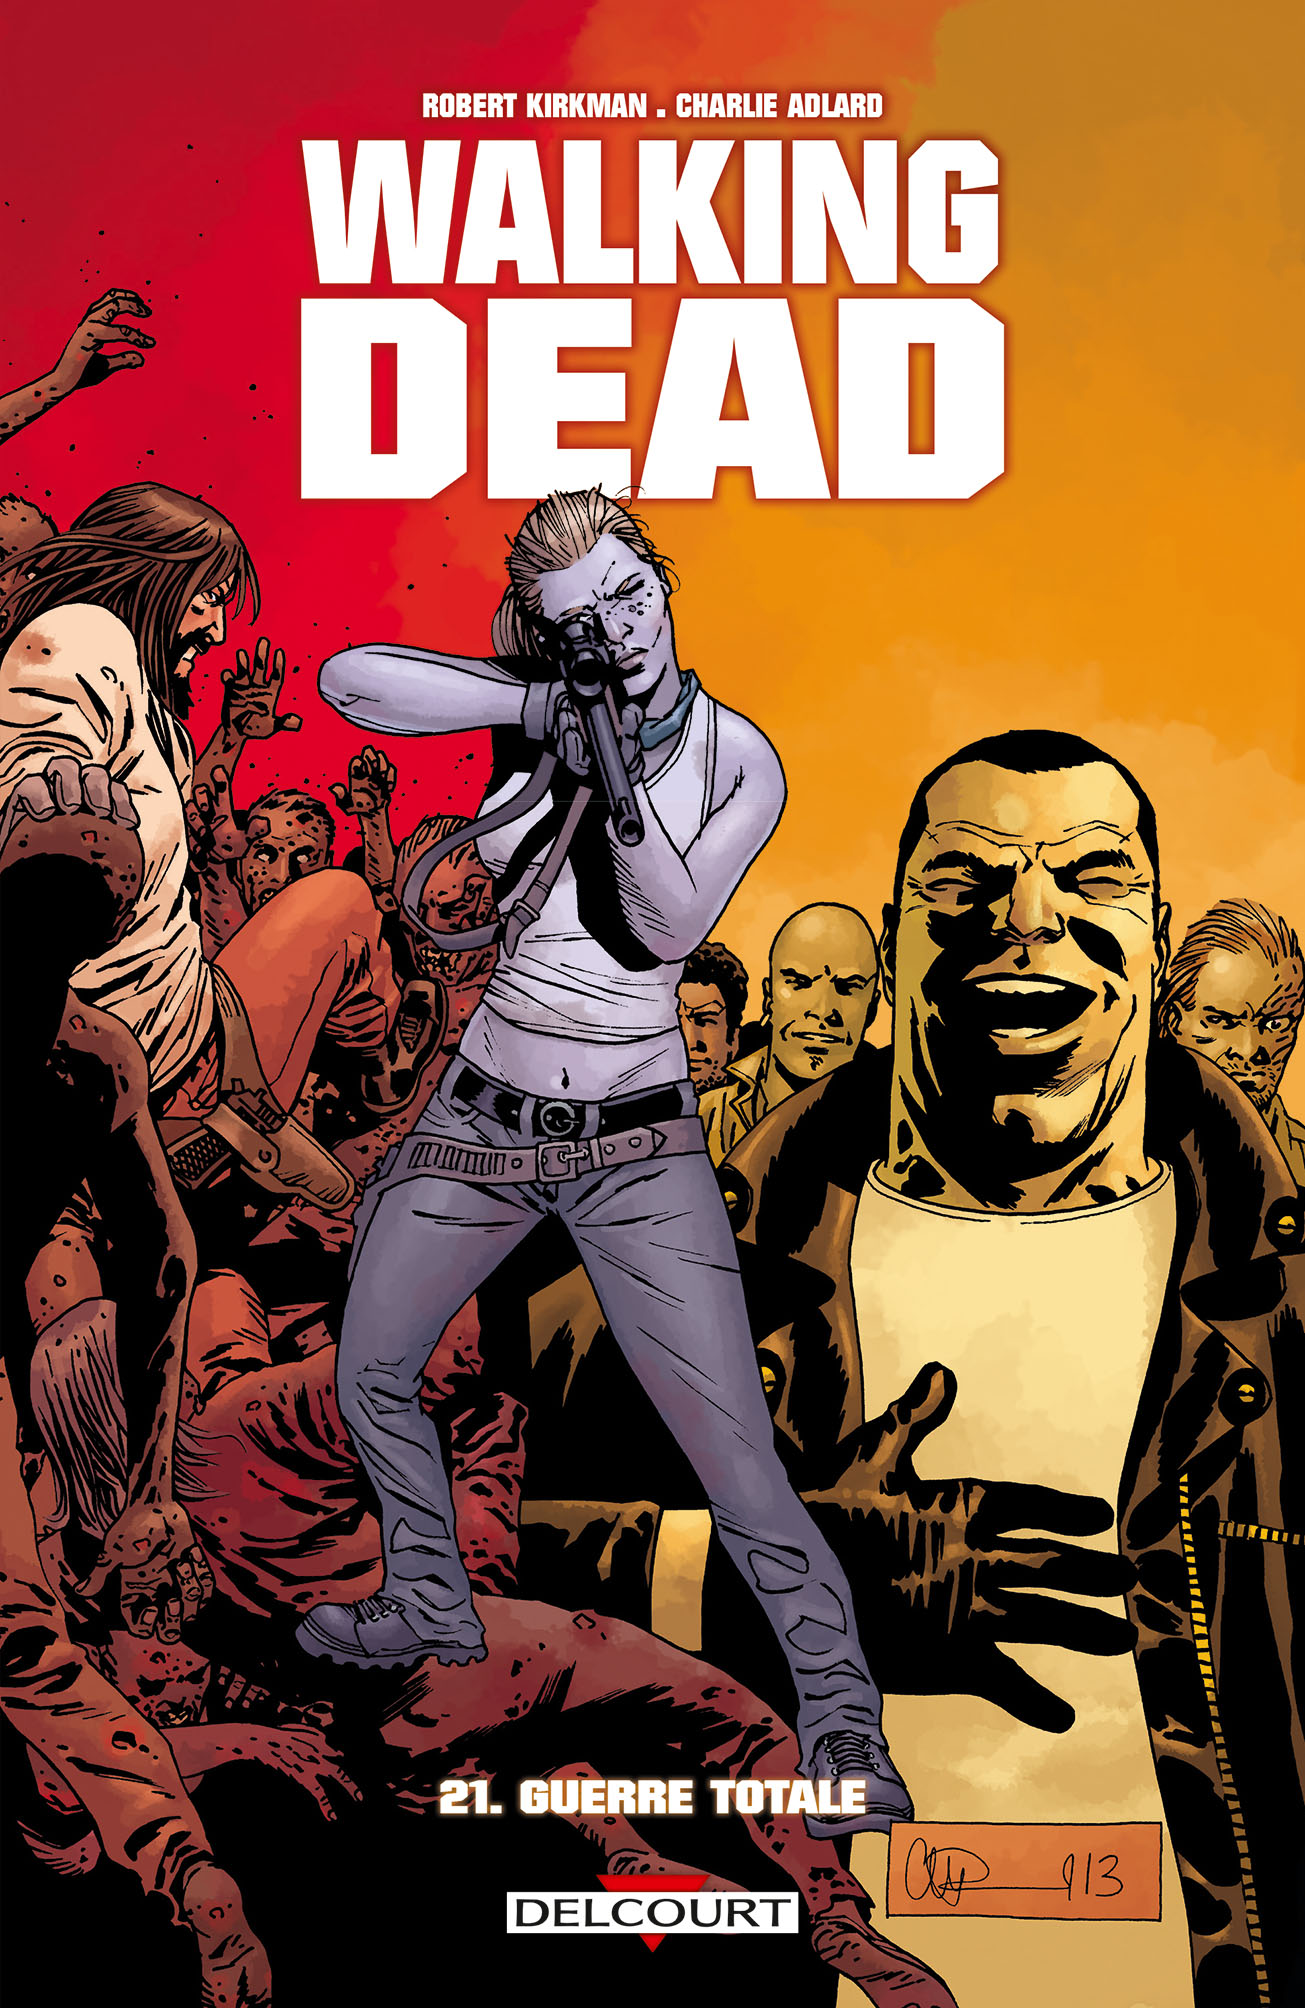 Walking Dead 21 - Guerre totale